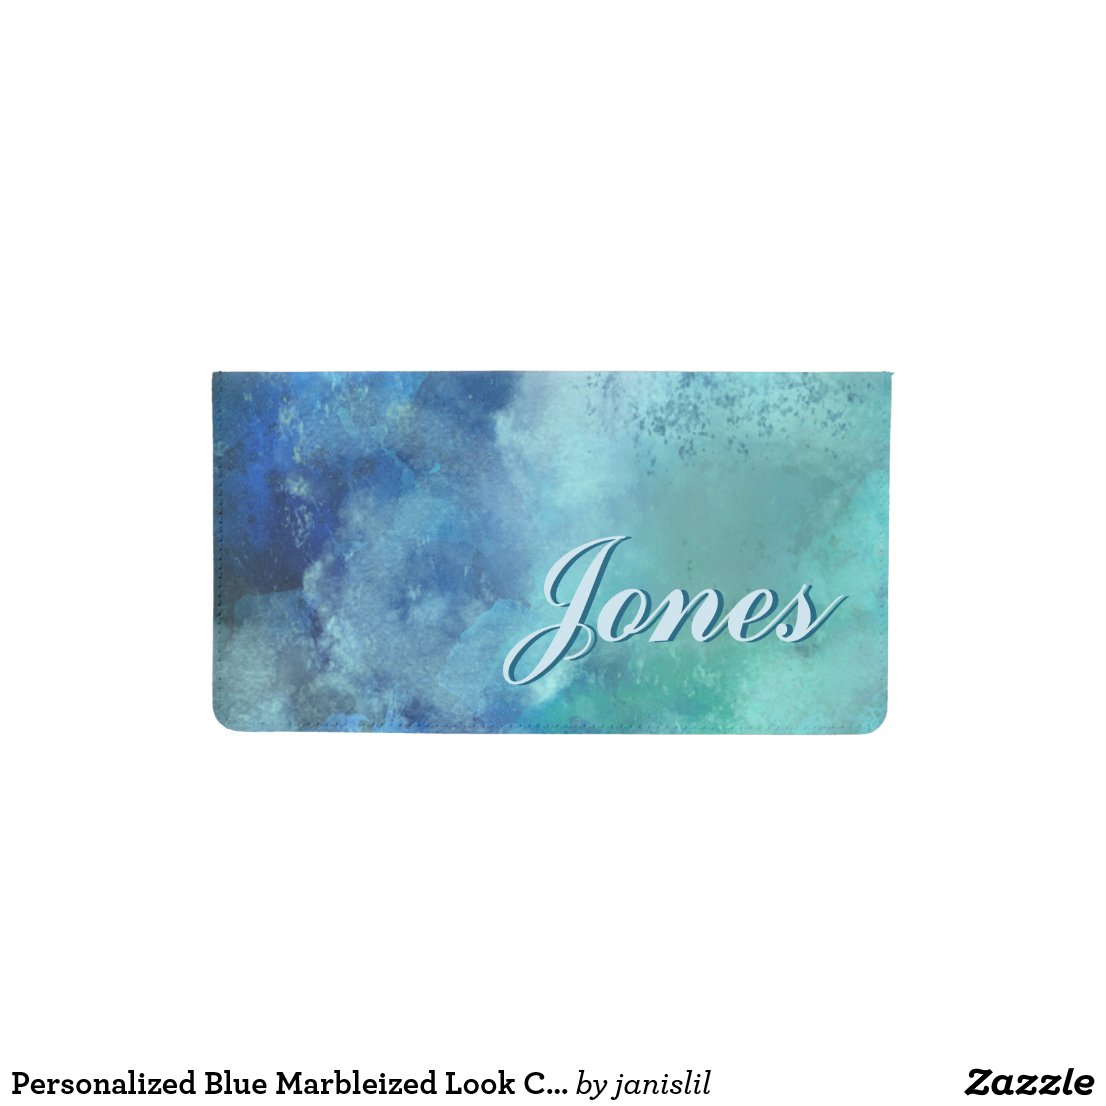 Personalized Blue Marbleized Look Checkbook Cover